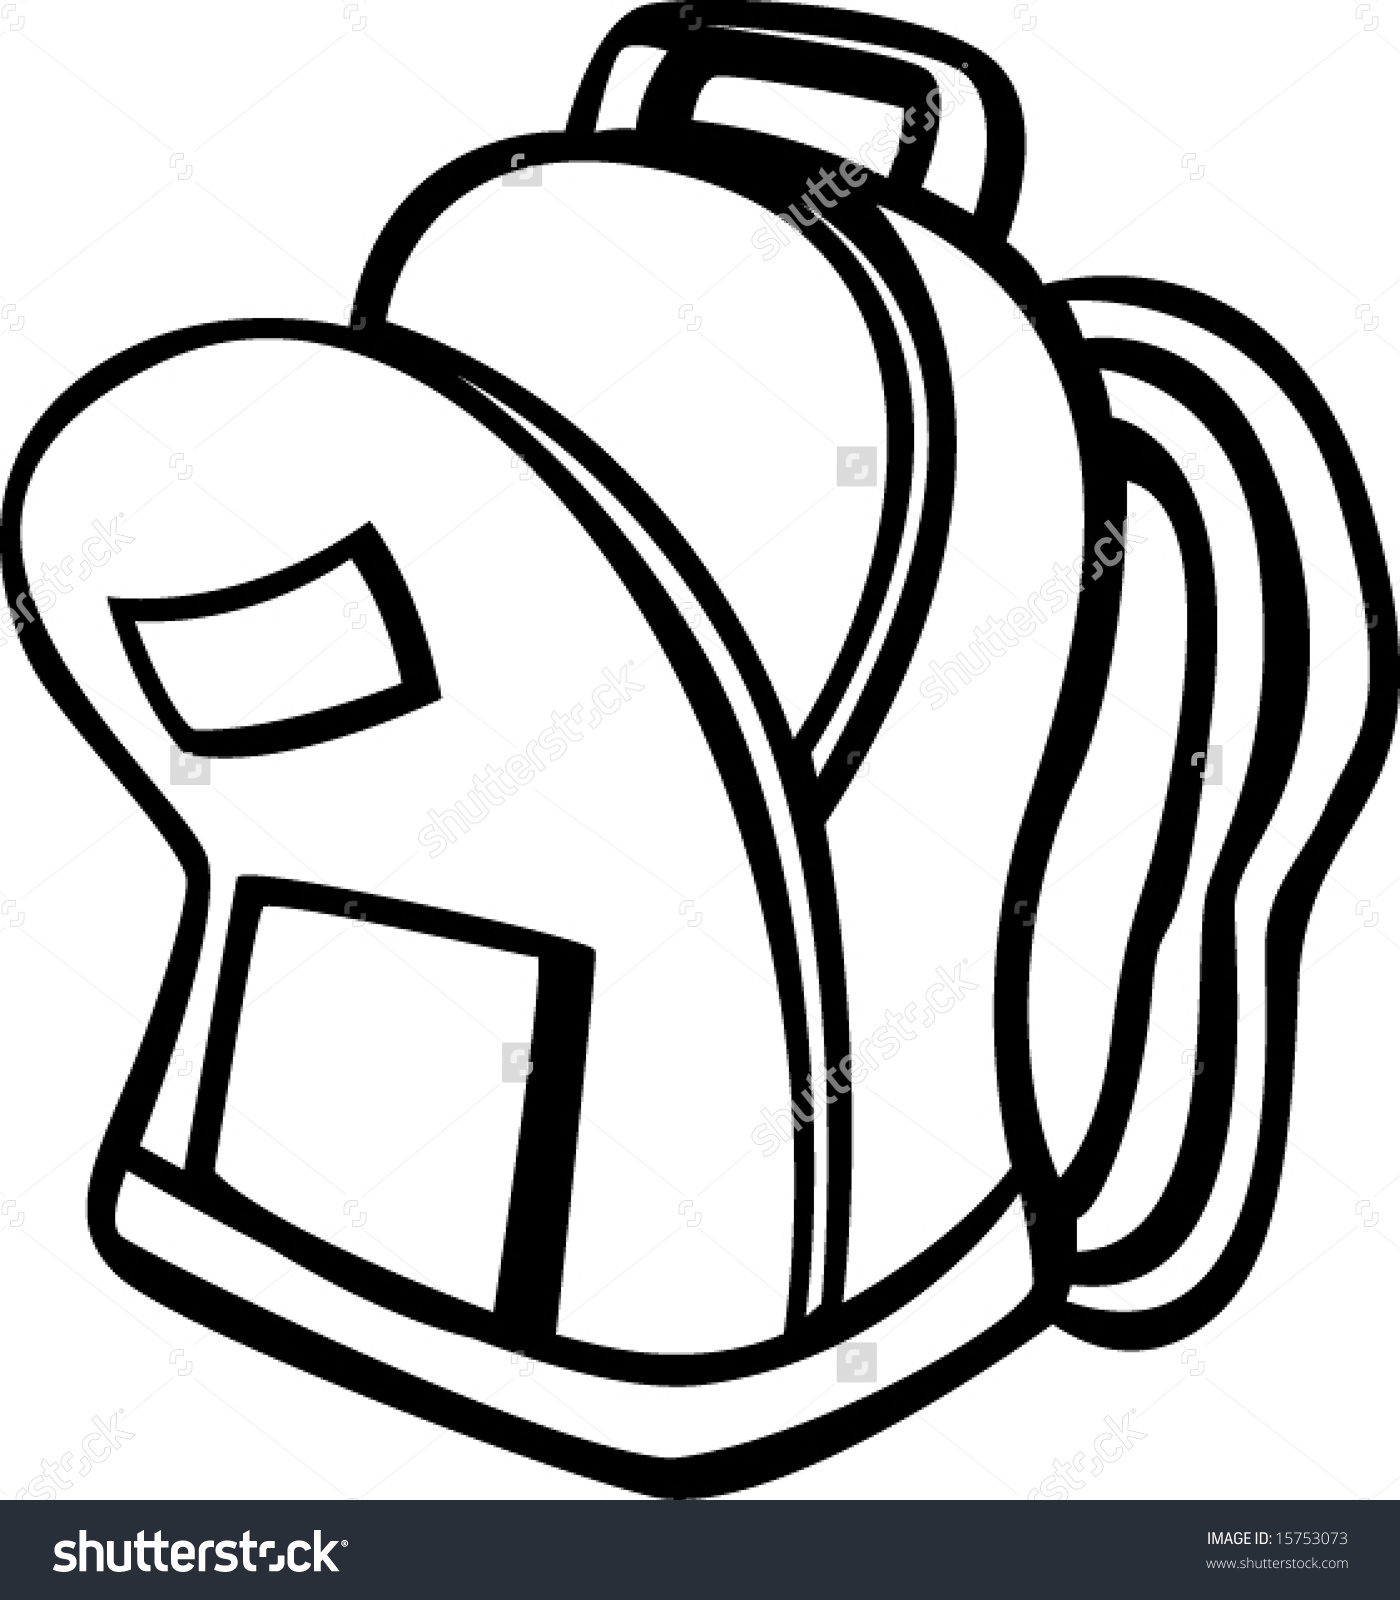 Backpack clipart open. Free download best on